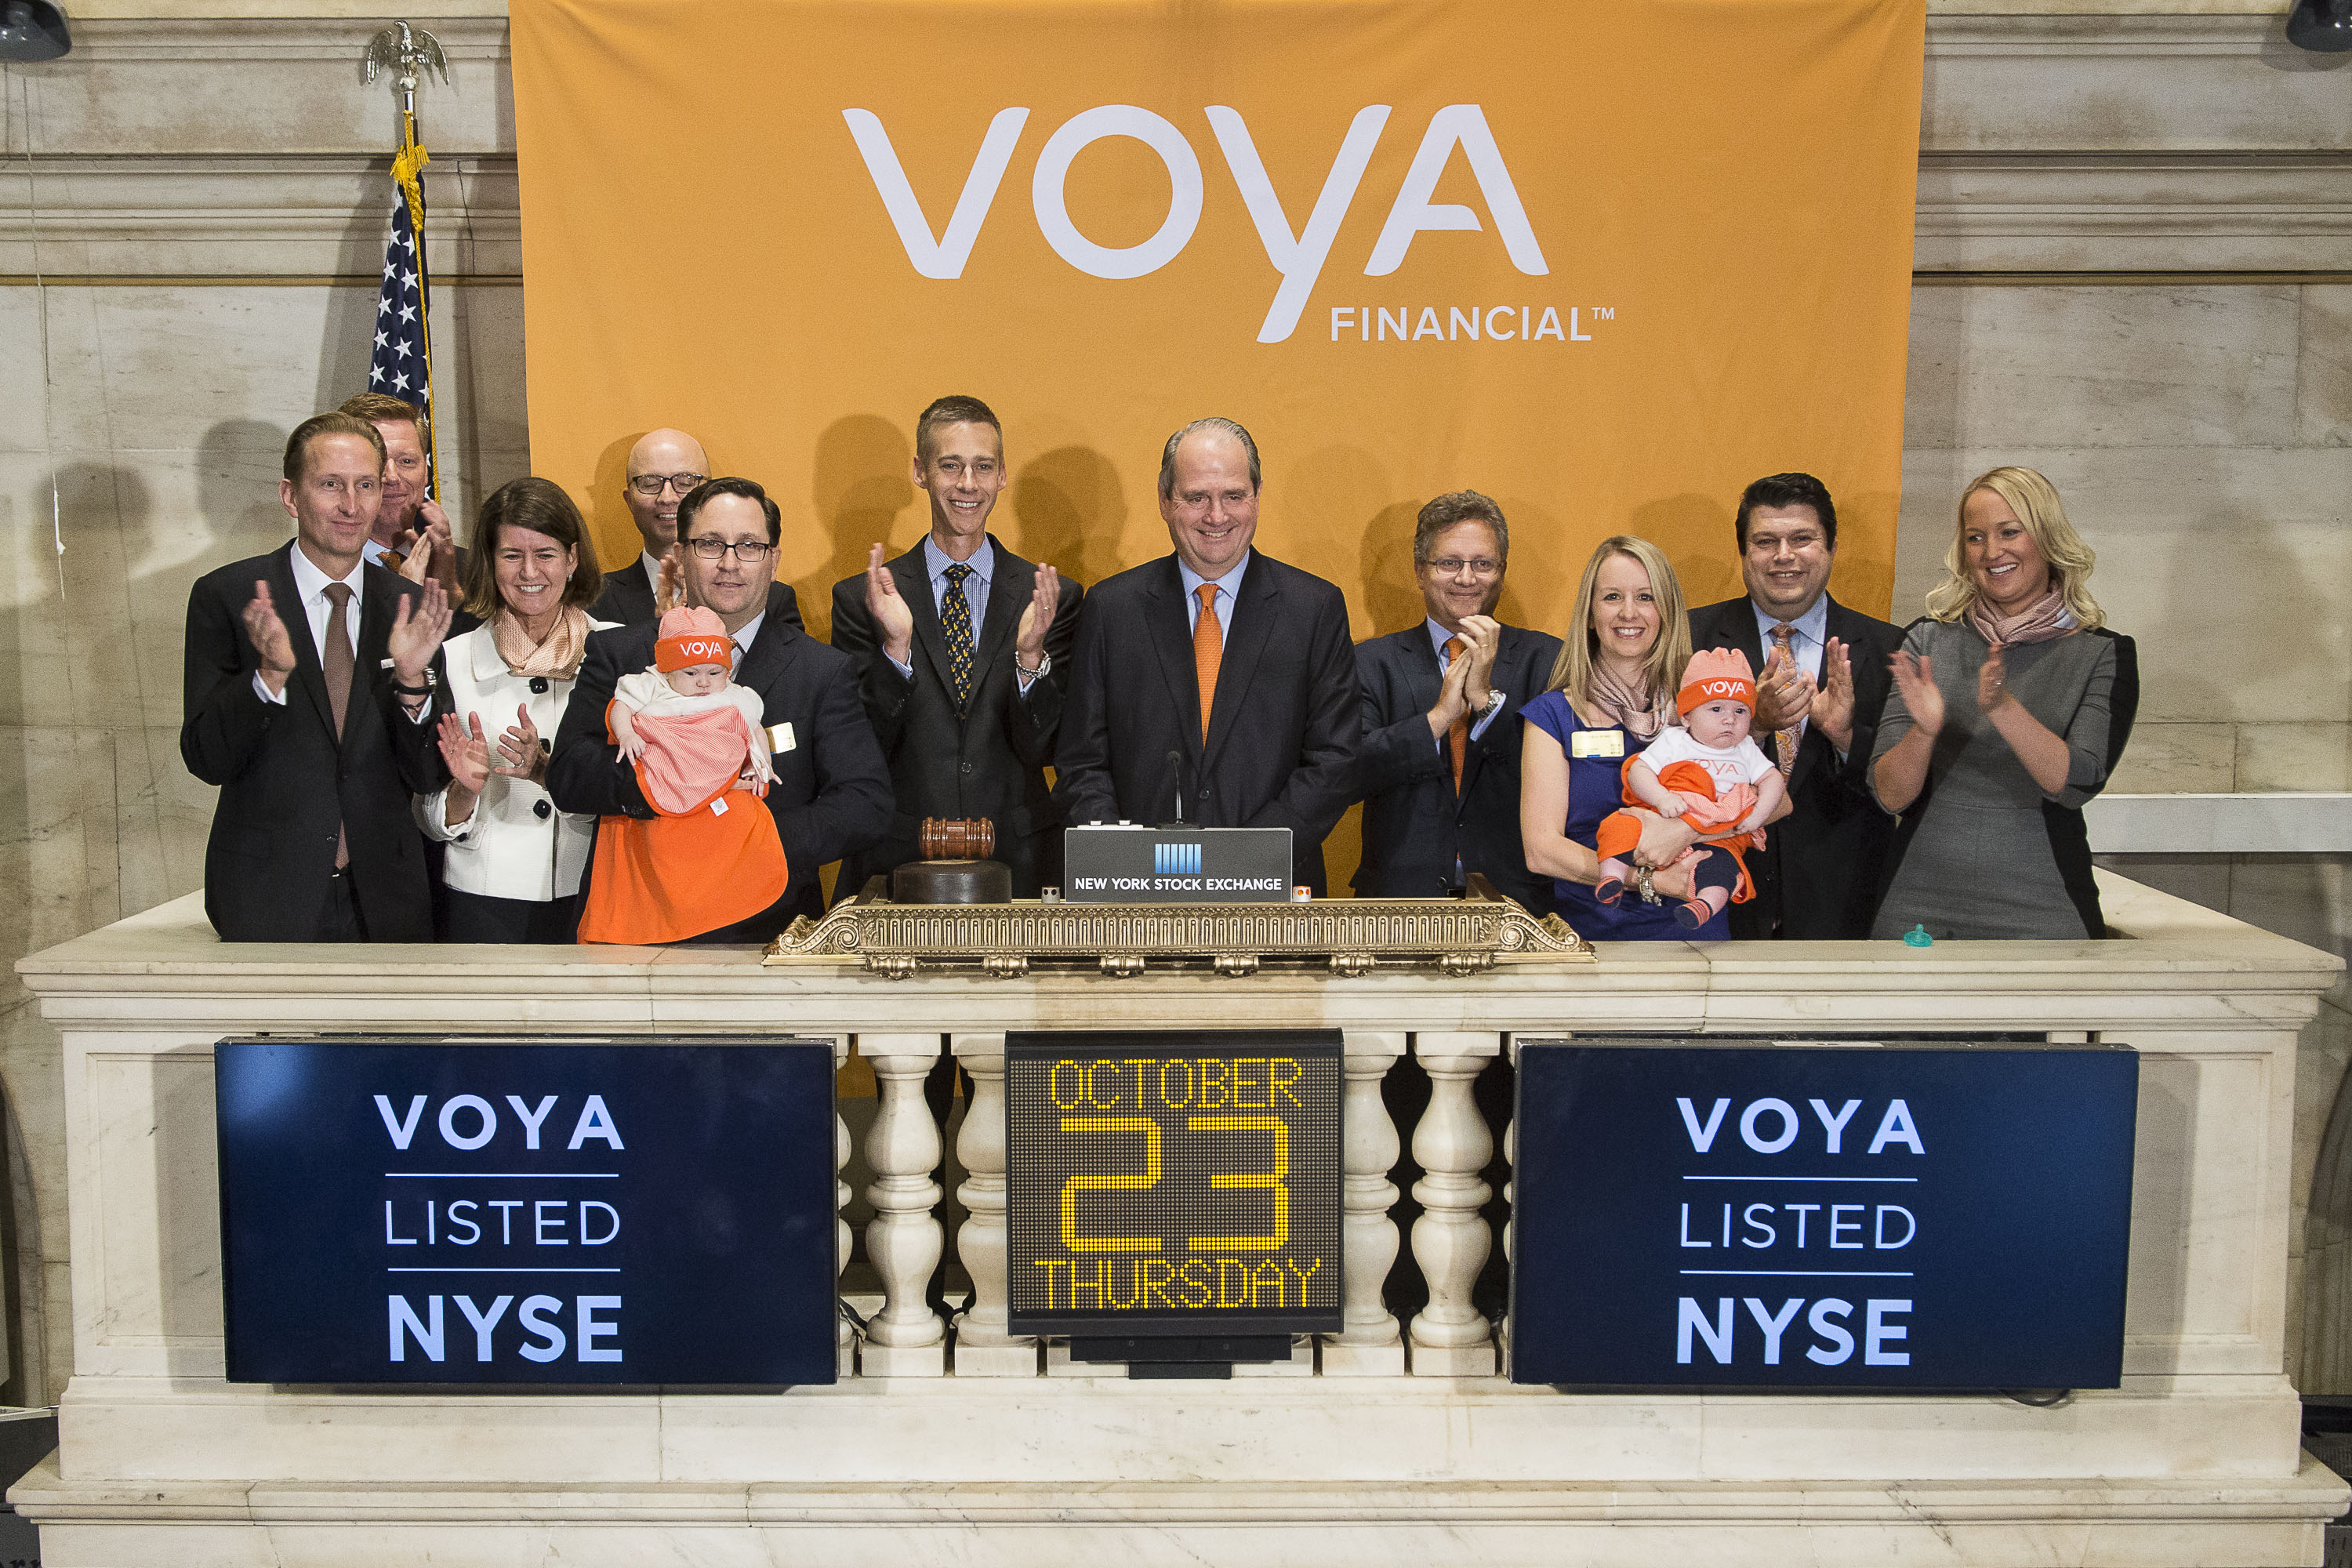 NEW YORK, NY - OCTOBER 23: Voya Financial Chairman and CEO Rodney O. Martin Jr. rings the NYSE Closing Bell® to highlight the Voya Born to Save program and celebrate the consumer launch of the Voya brand at The New York Stock Exchange on October 23rd, 2014 in New York City. Through the Voya Born to Save program, every baby born in the United States on October 20, 2014 is eligible to receive a $500 mutual fund investment from Voya Financial as a head start on their future retirement savings. (Photo by Josh Kuckens/NYSE)